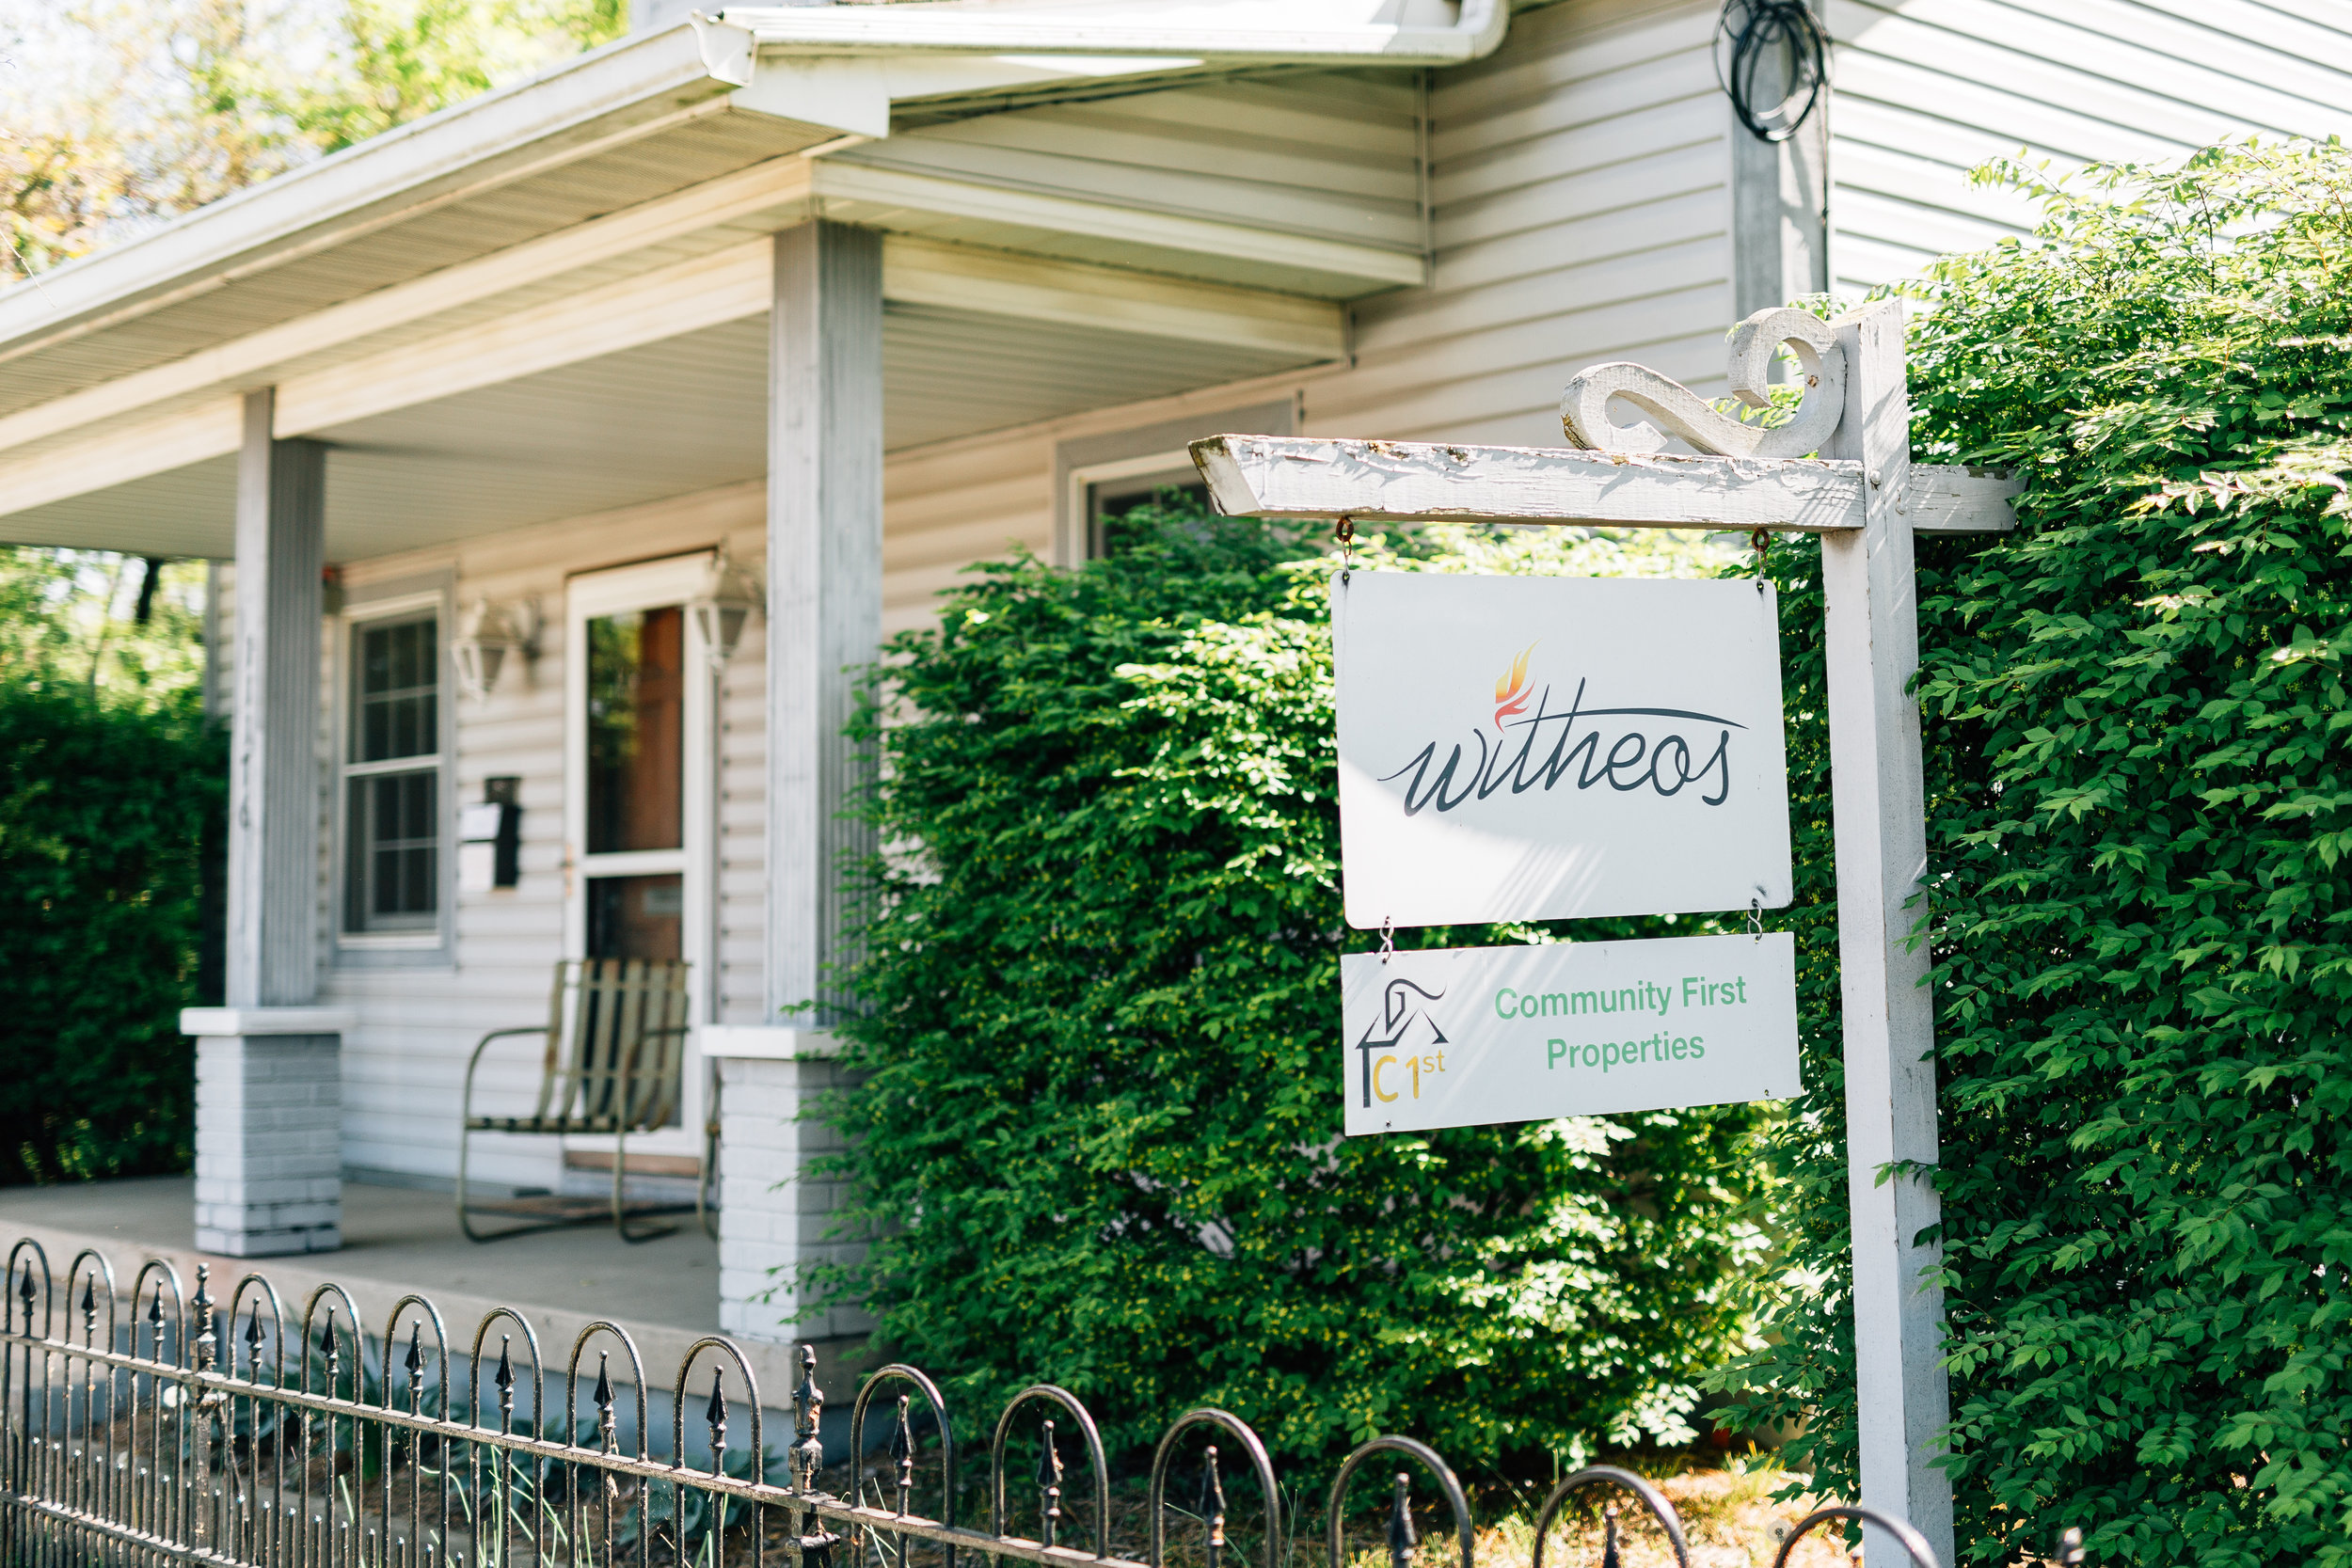 """ABOUT - Witheos (""""with God"""") is a human outfitter providing resources to help people thrive in their daily lives. We aim to do this by combining the sciences of faith, business, and psychology."""